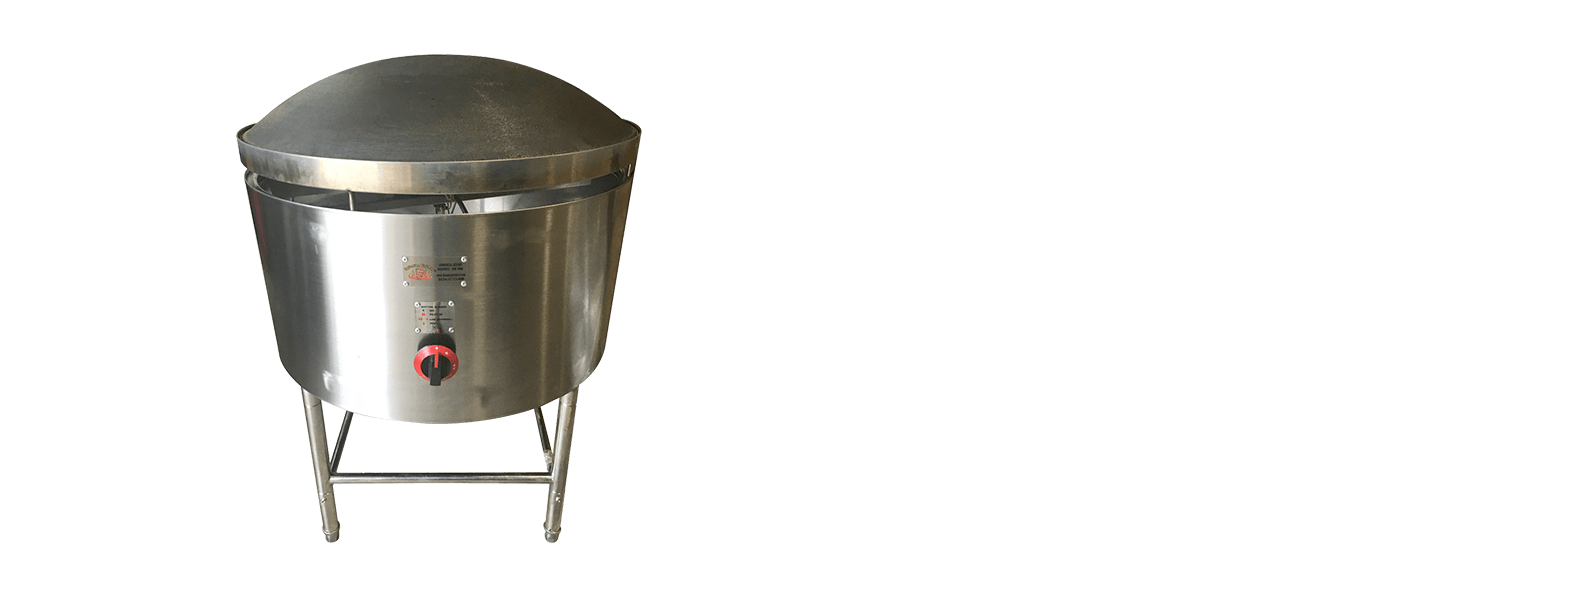 Saj Bread Maker - 1/2 inch Diameter With Stand